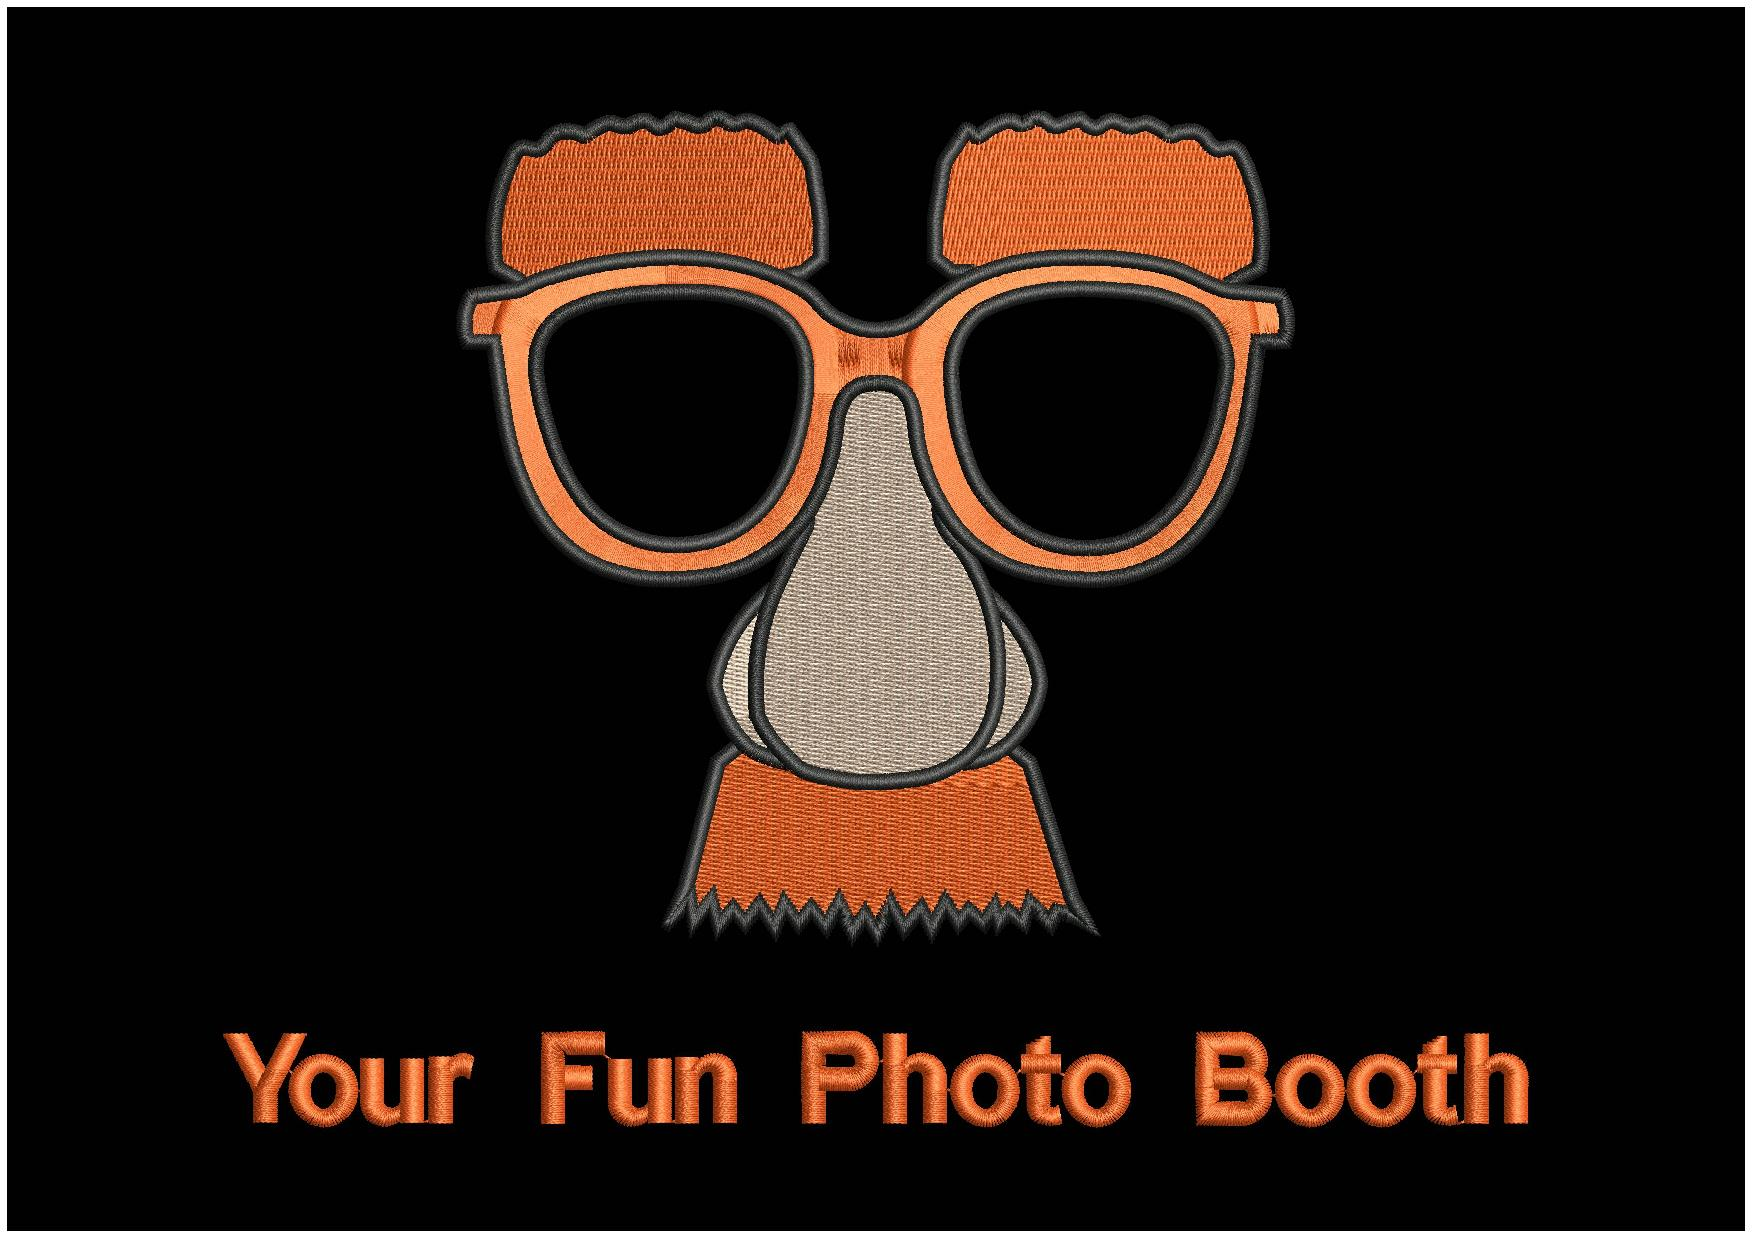 Your Fun Photo Booth